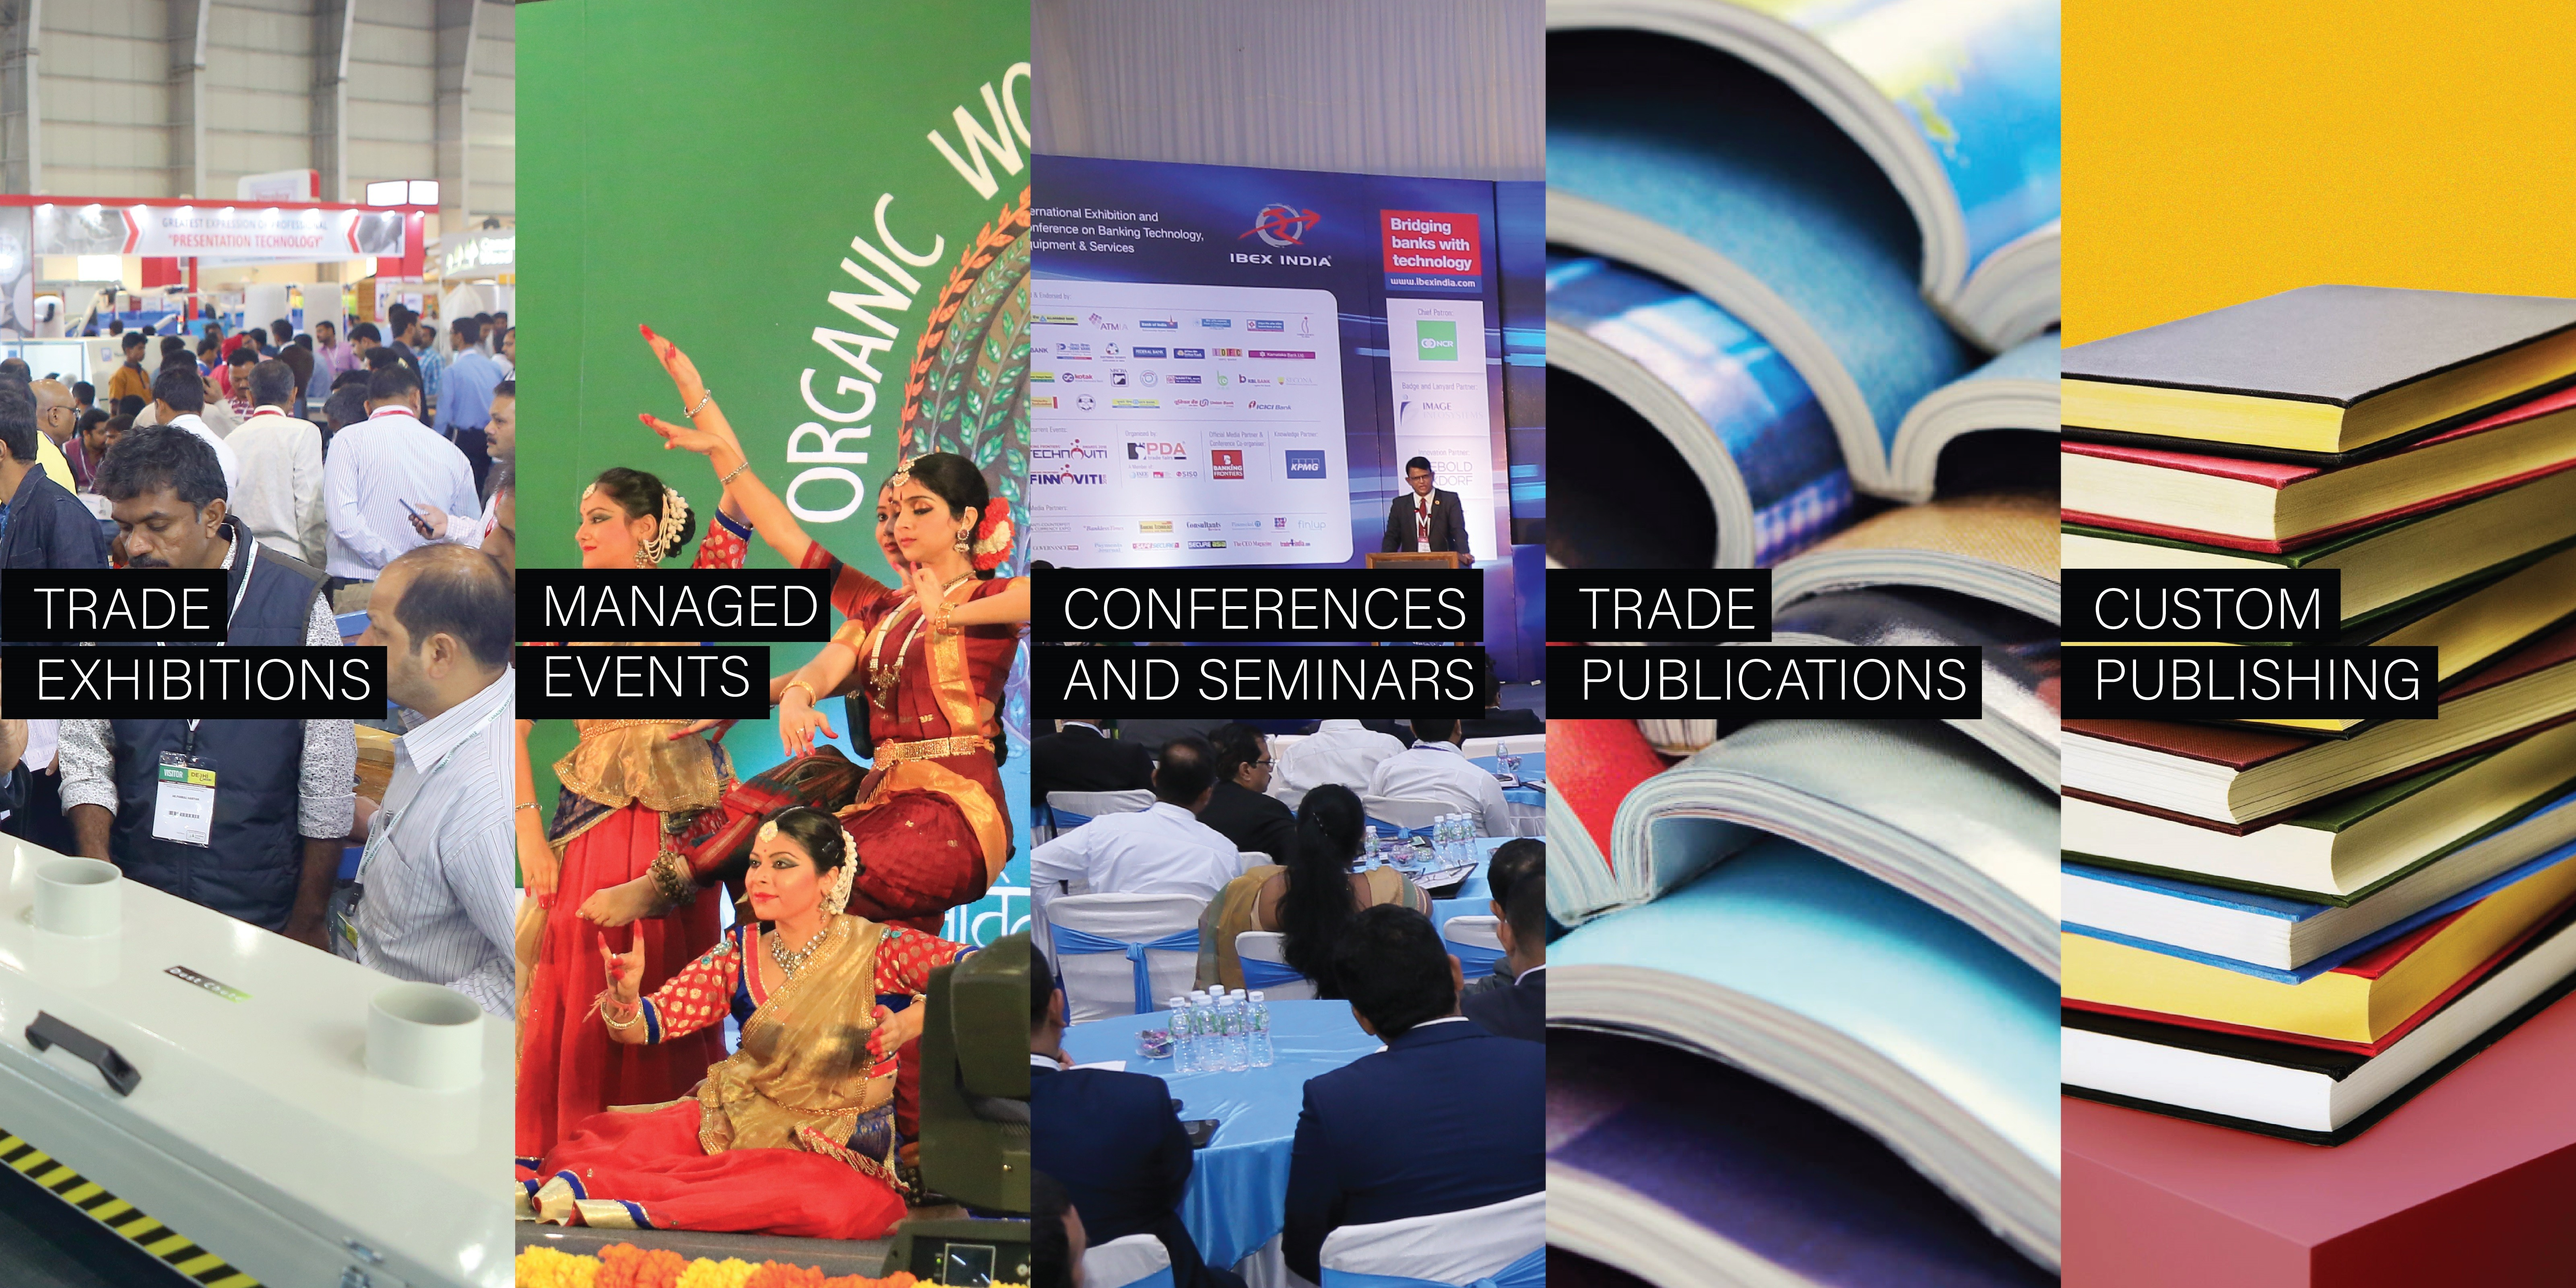 PDA TRADE FAIRS PVT LTD | LinkedIn